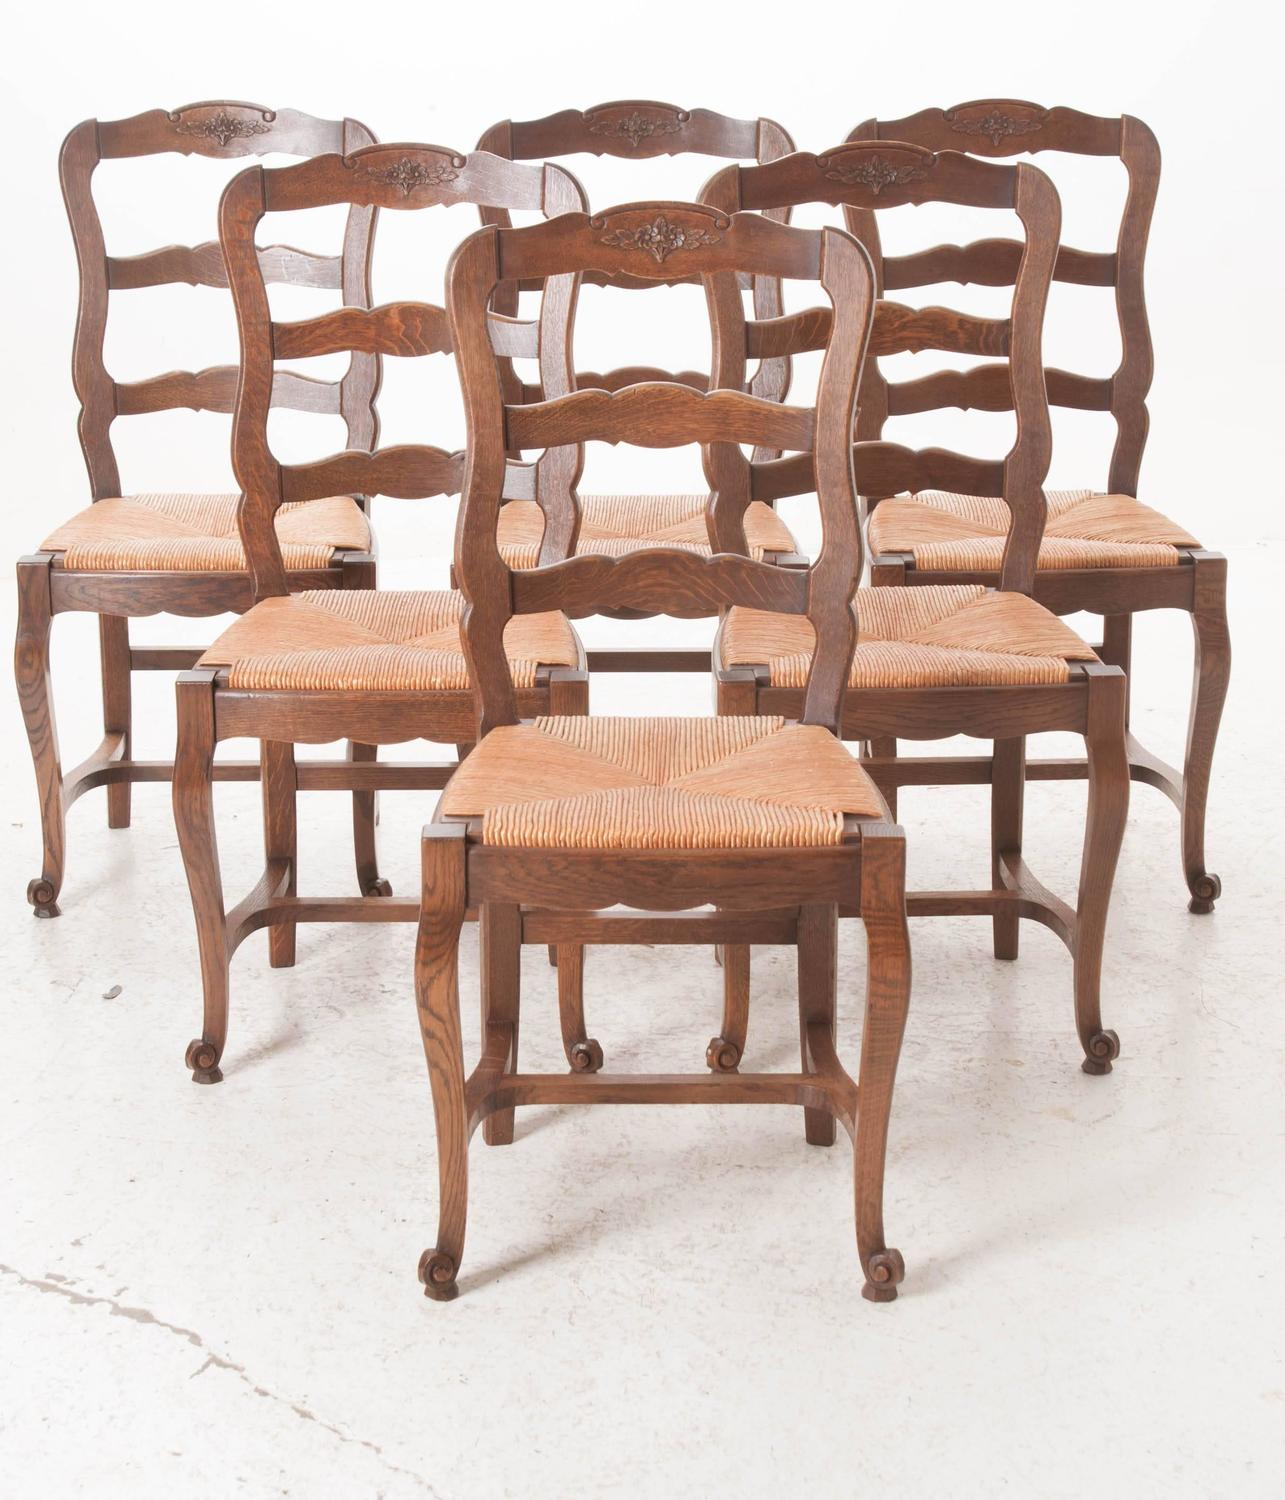 Set of six french 1940s oak ladder back dining chairs for sale at 1stdibs - Ladder back dining room chairs ...